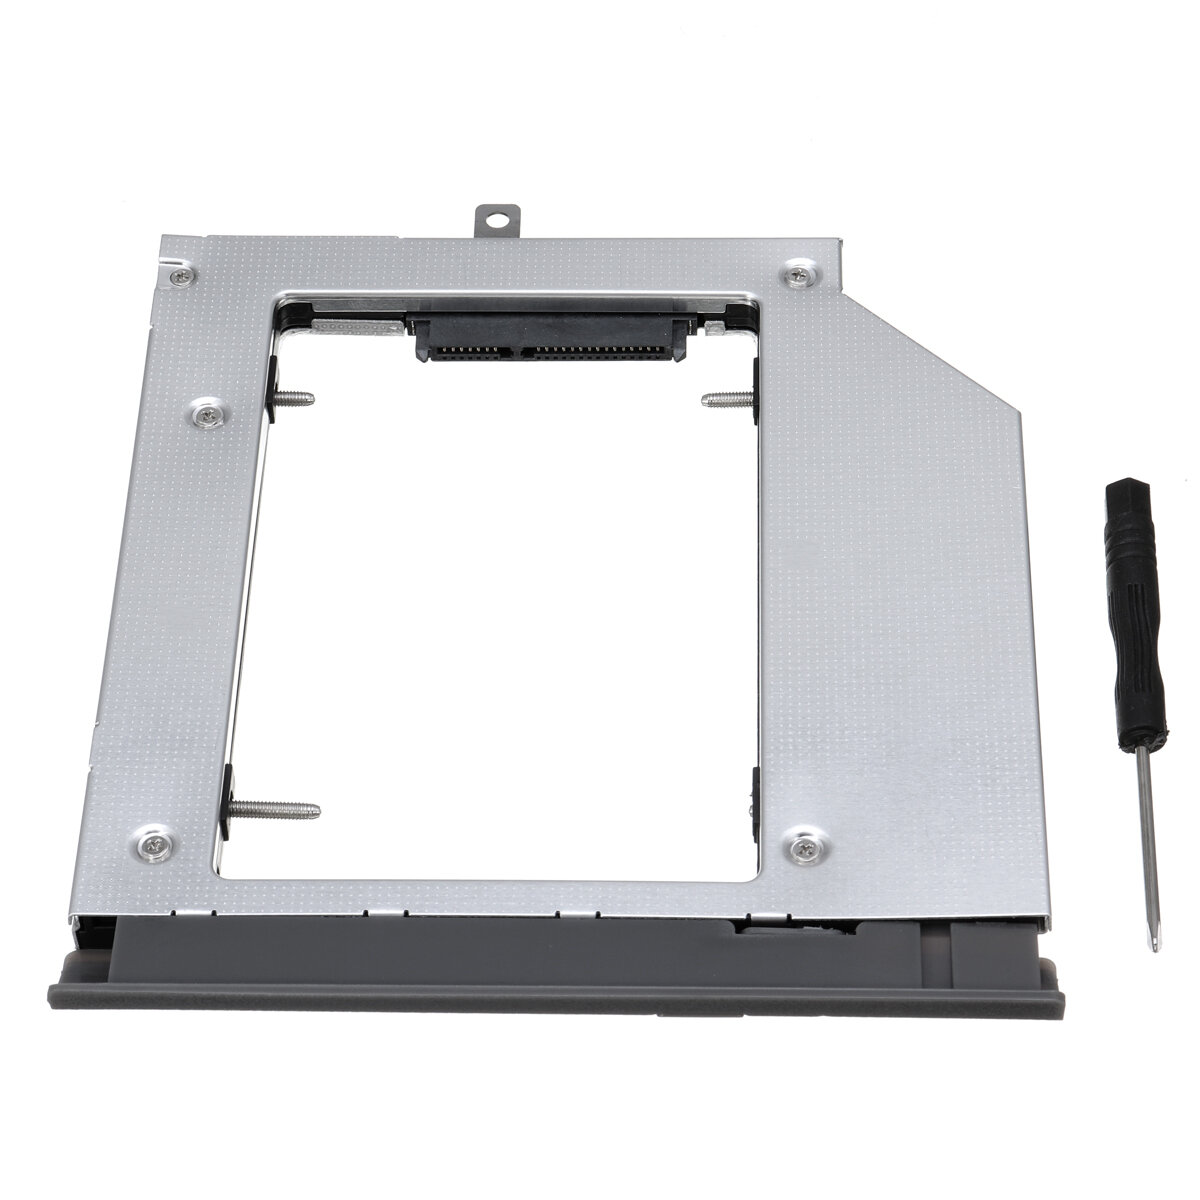 Notebook Optical Drive Bay Hard Drive Caddy For Lenovo ideapad 320 330 520  Converter